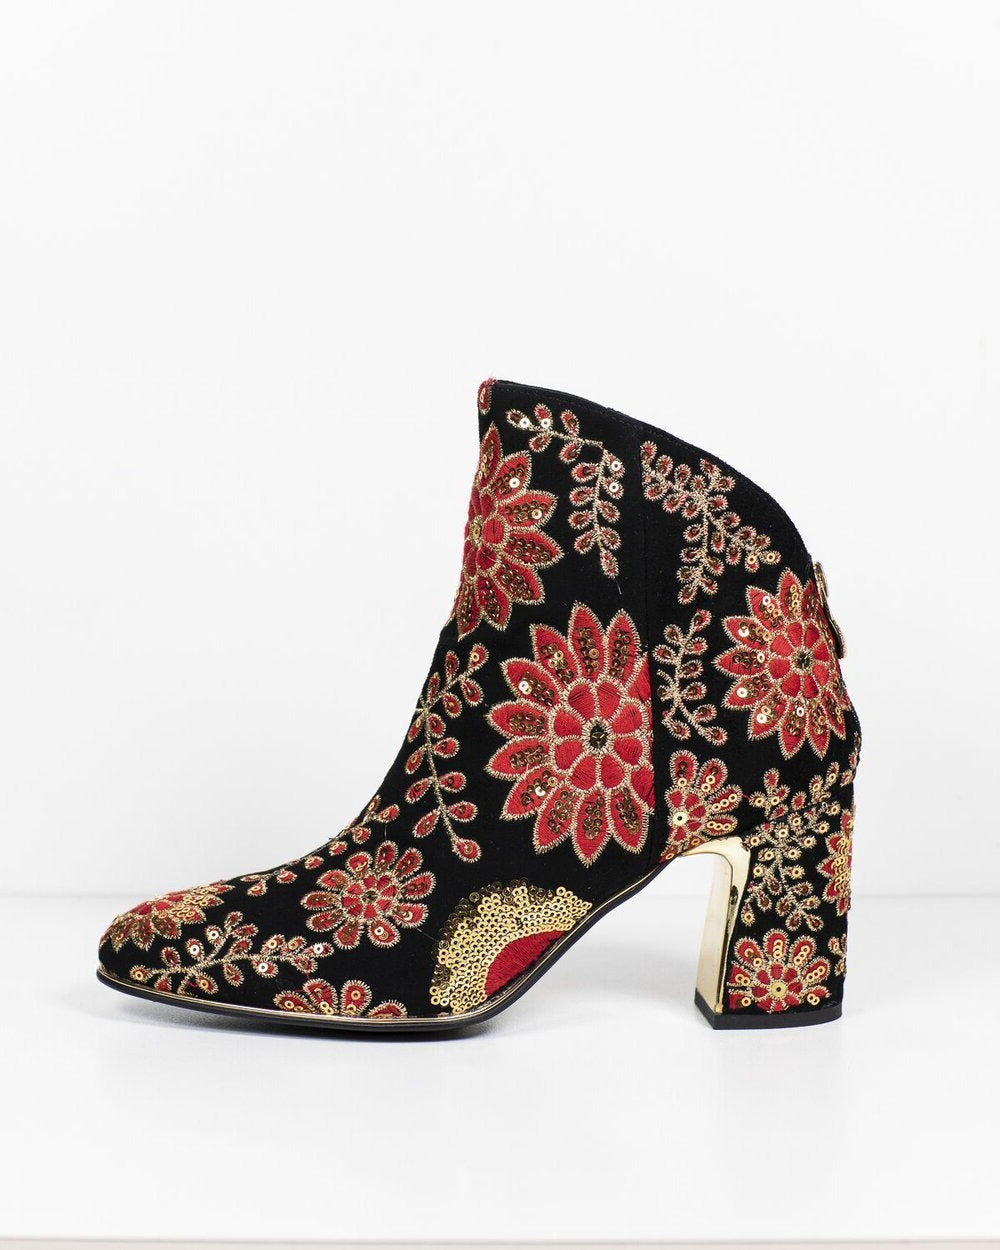 Django & Juliette Karen Black-Gold-Red Suede